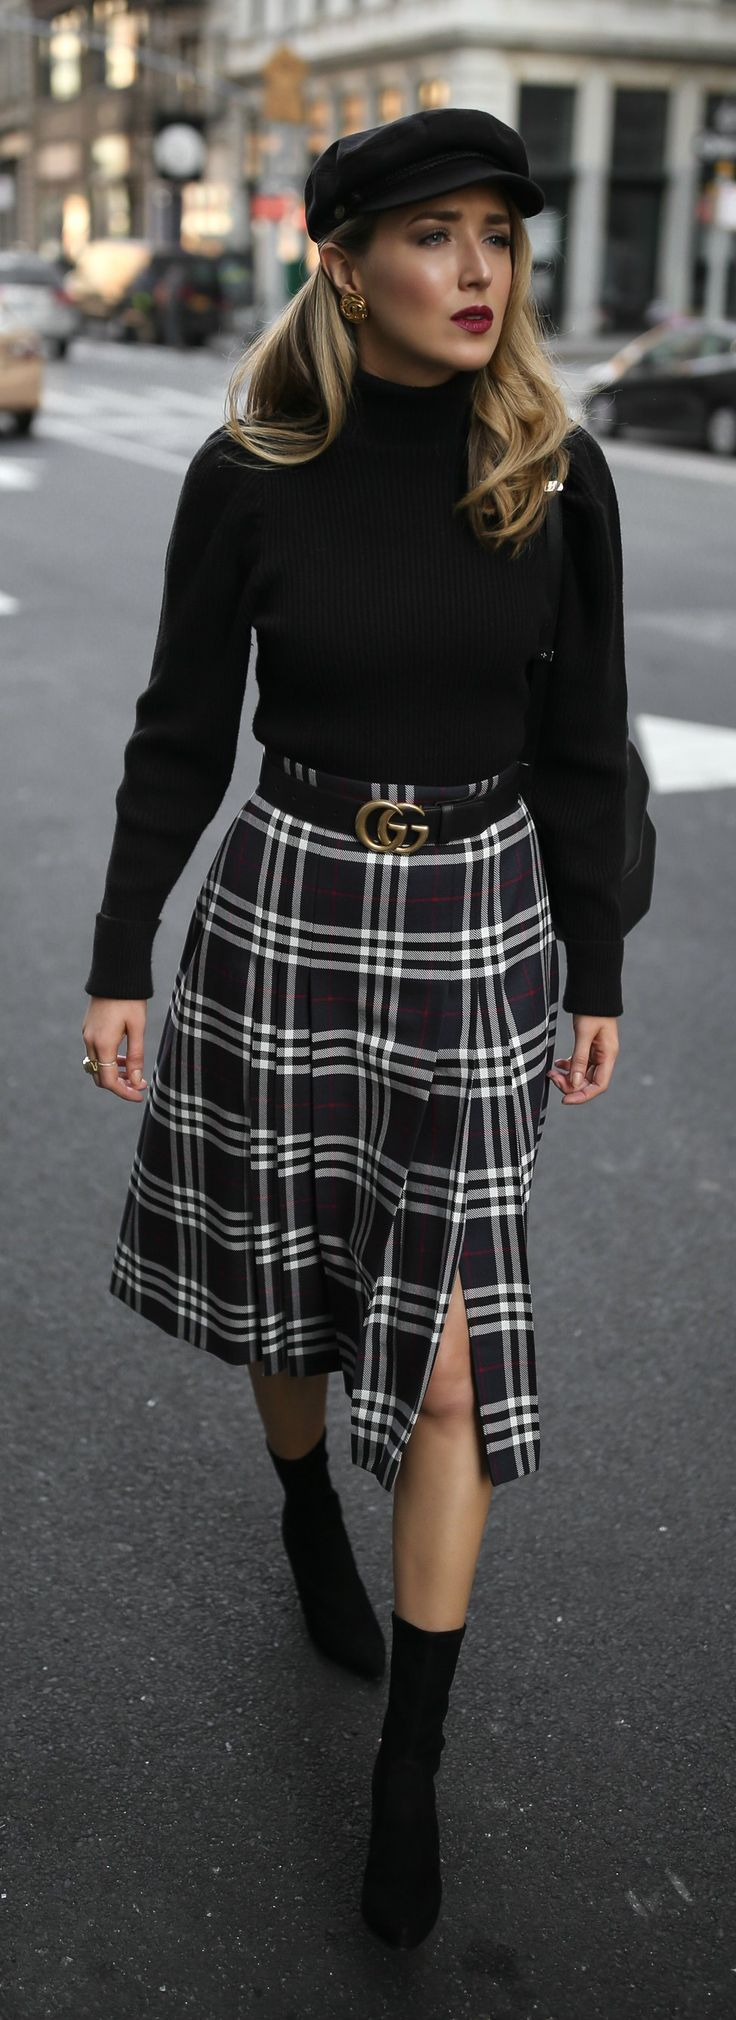 Classic Fall Style //  Pleated plaid midi skirt, black puffed-shoulder turtleneck, black sock boots, baker boy cap and black leather waist belt {Burberry, Anthropologie, Stuart Weitzman, Gucci, M2Malletier, Brixton, classic style, fall style, classy dress